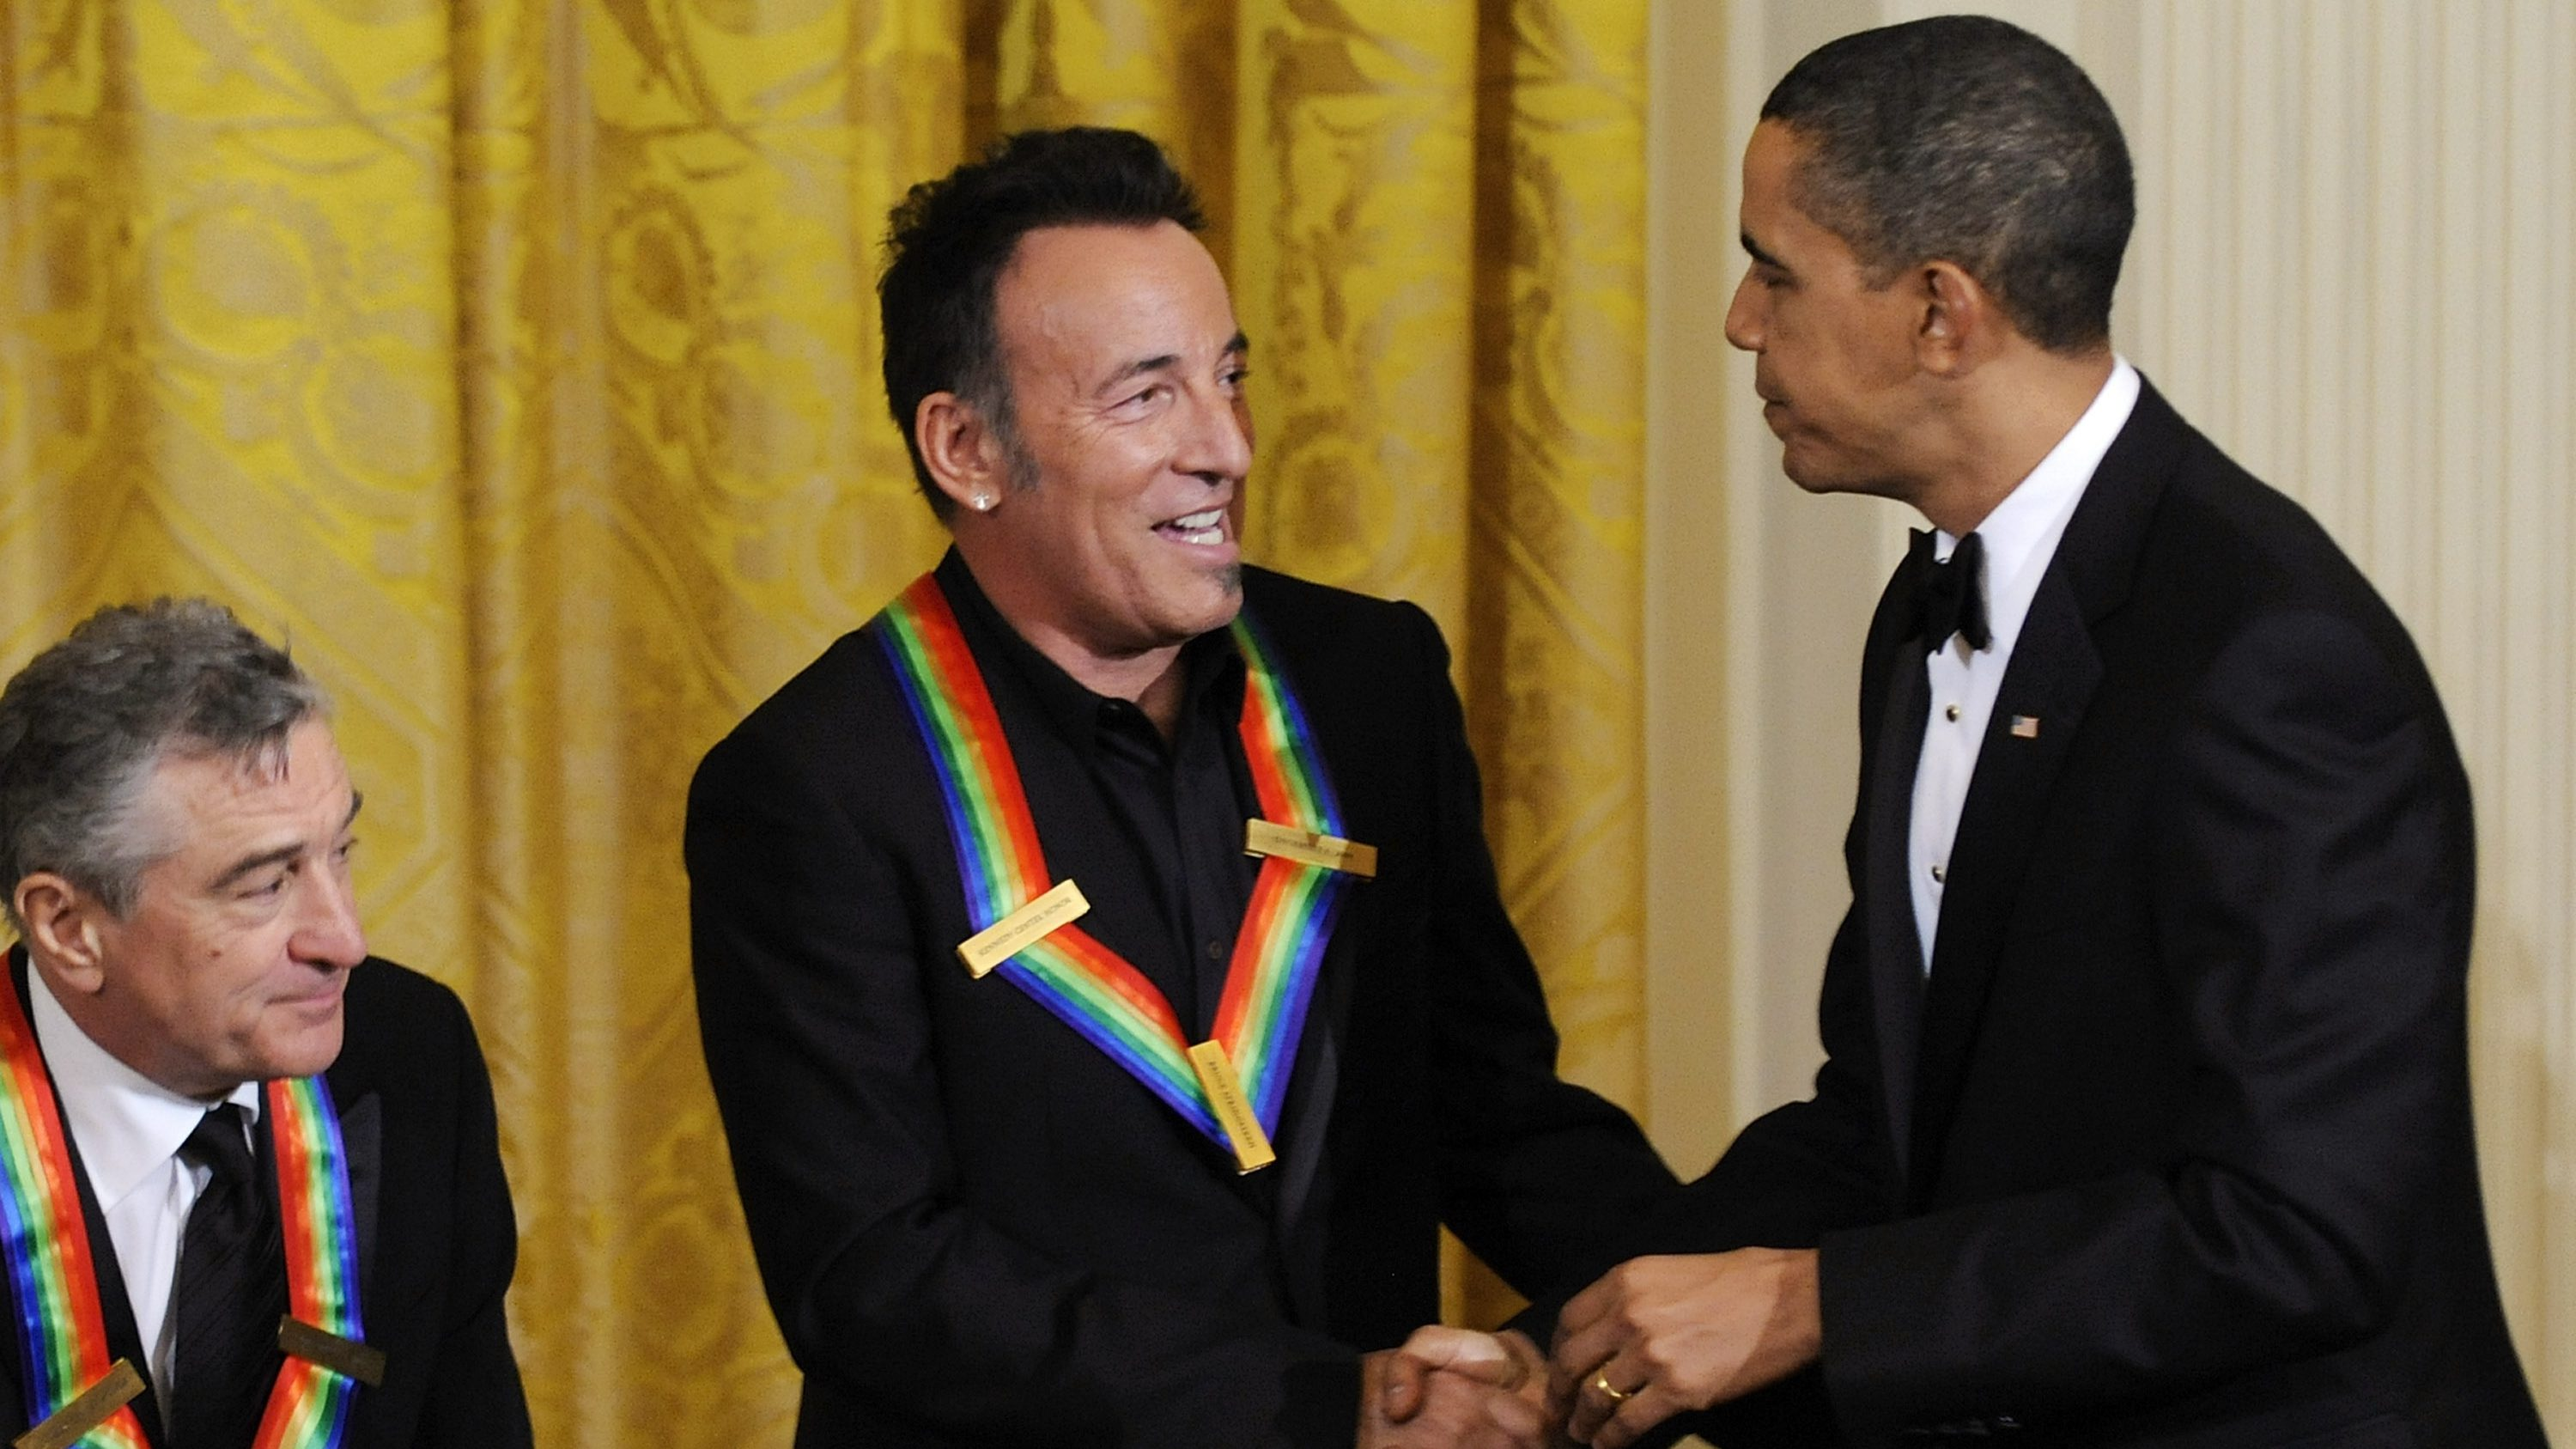 U.S. President Obama greets Springsteen and DeNiro at a reception at the White House in Washington